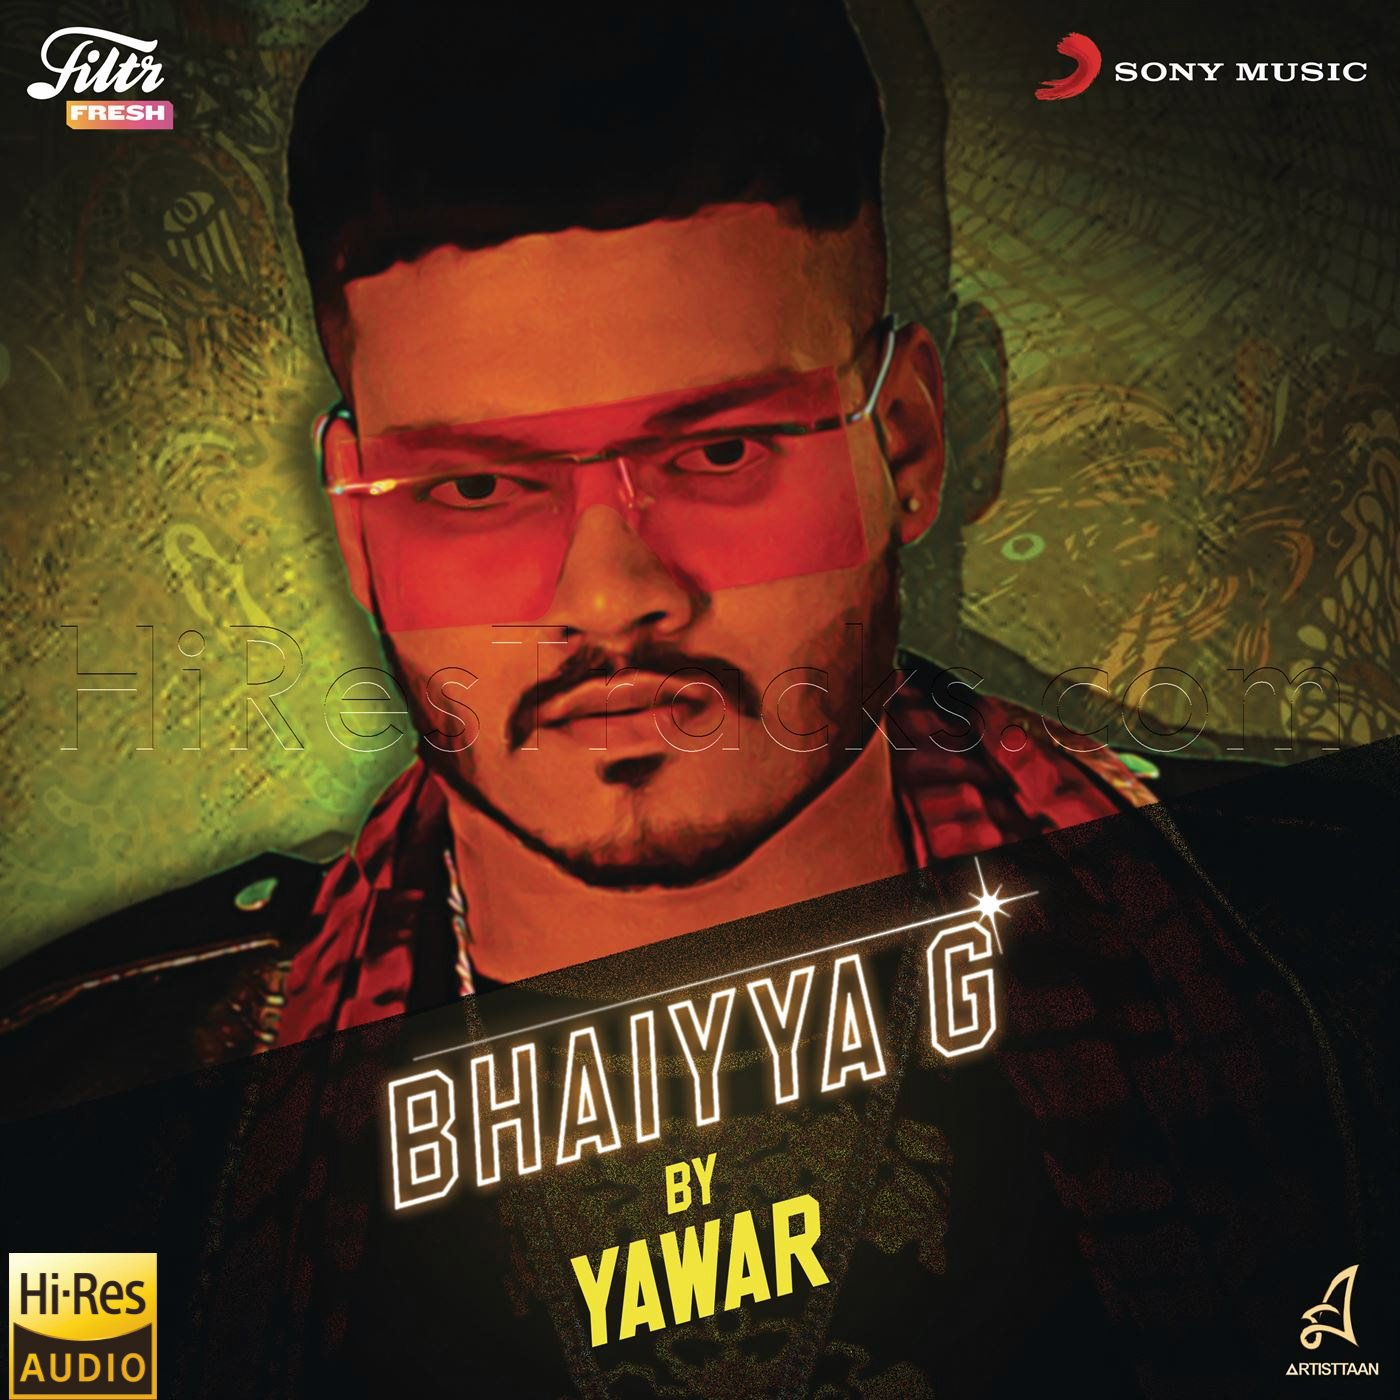 Bhaiyya G – Single (2019) [24 BIT-48 KHZ]